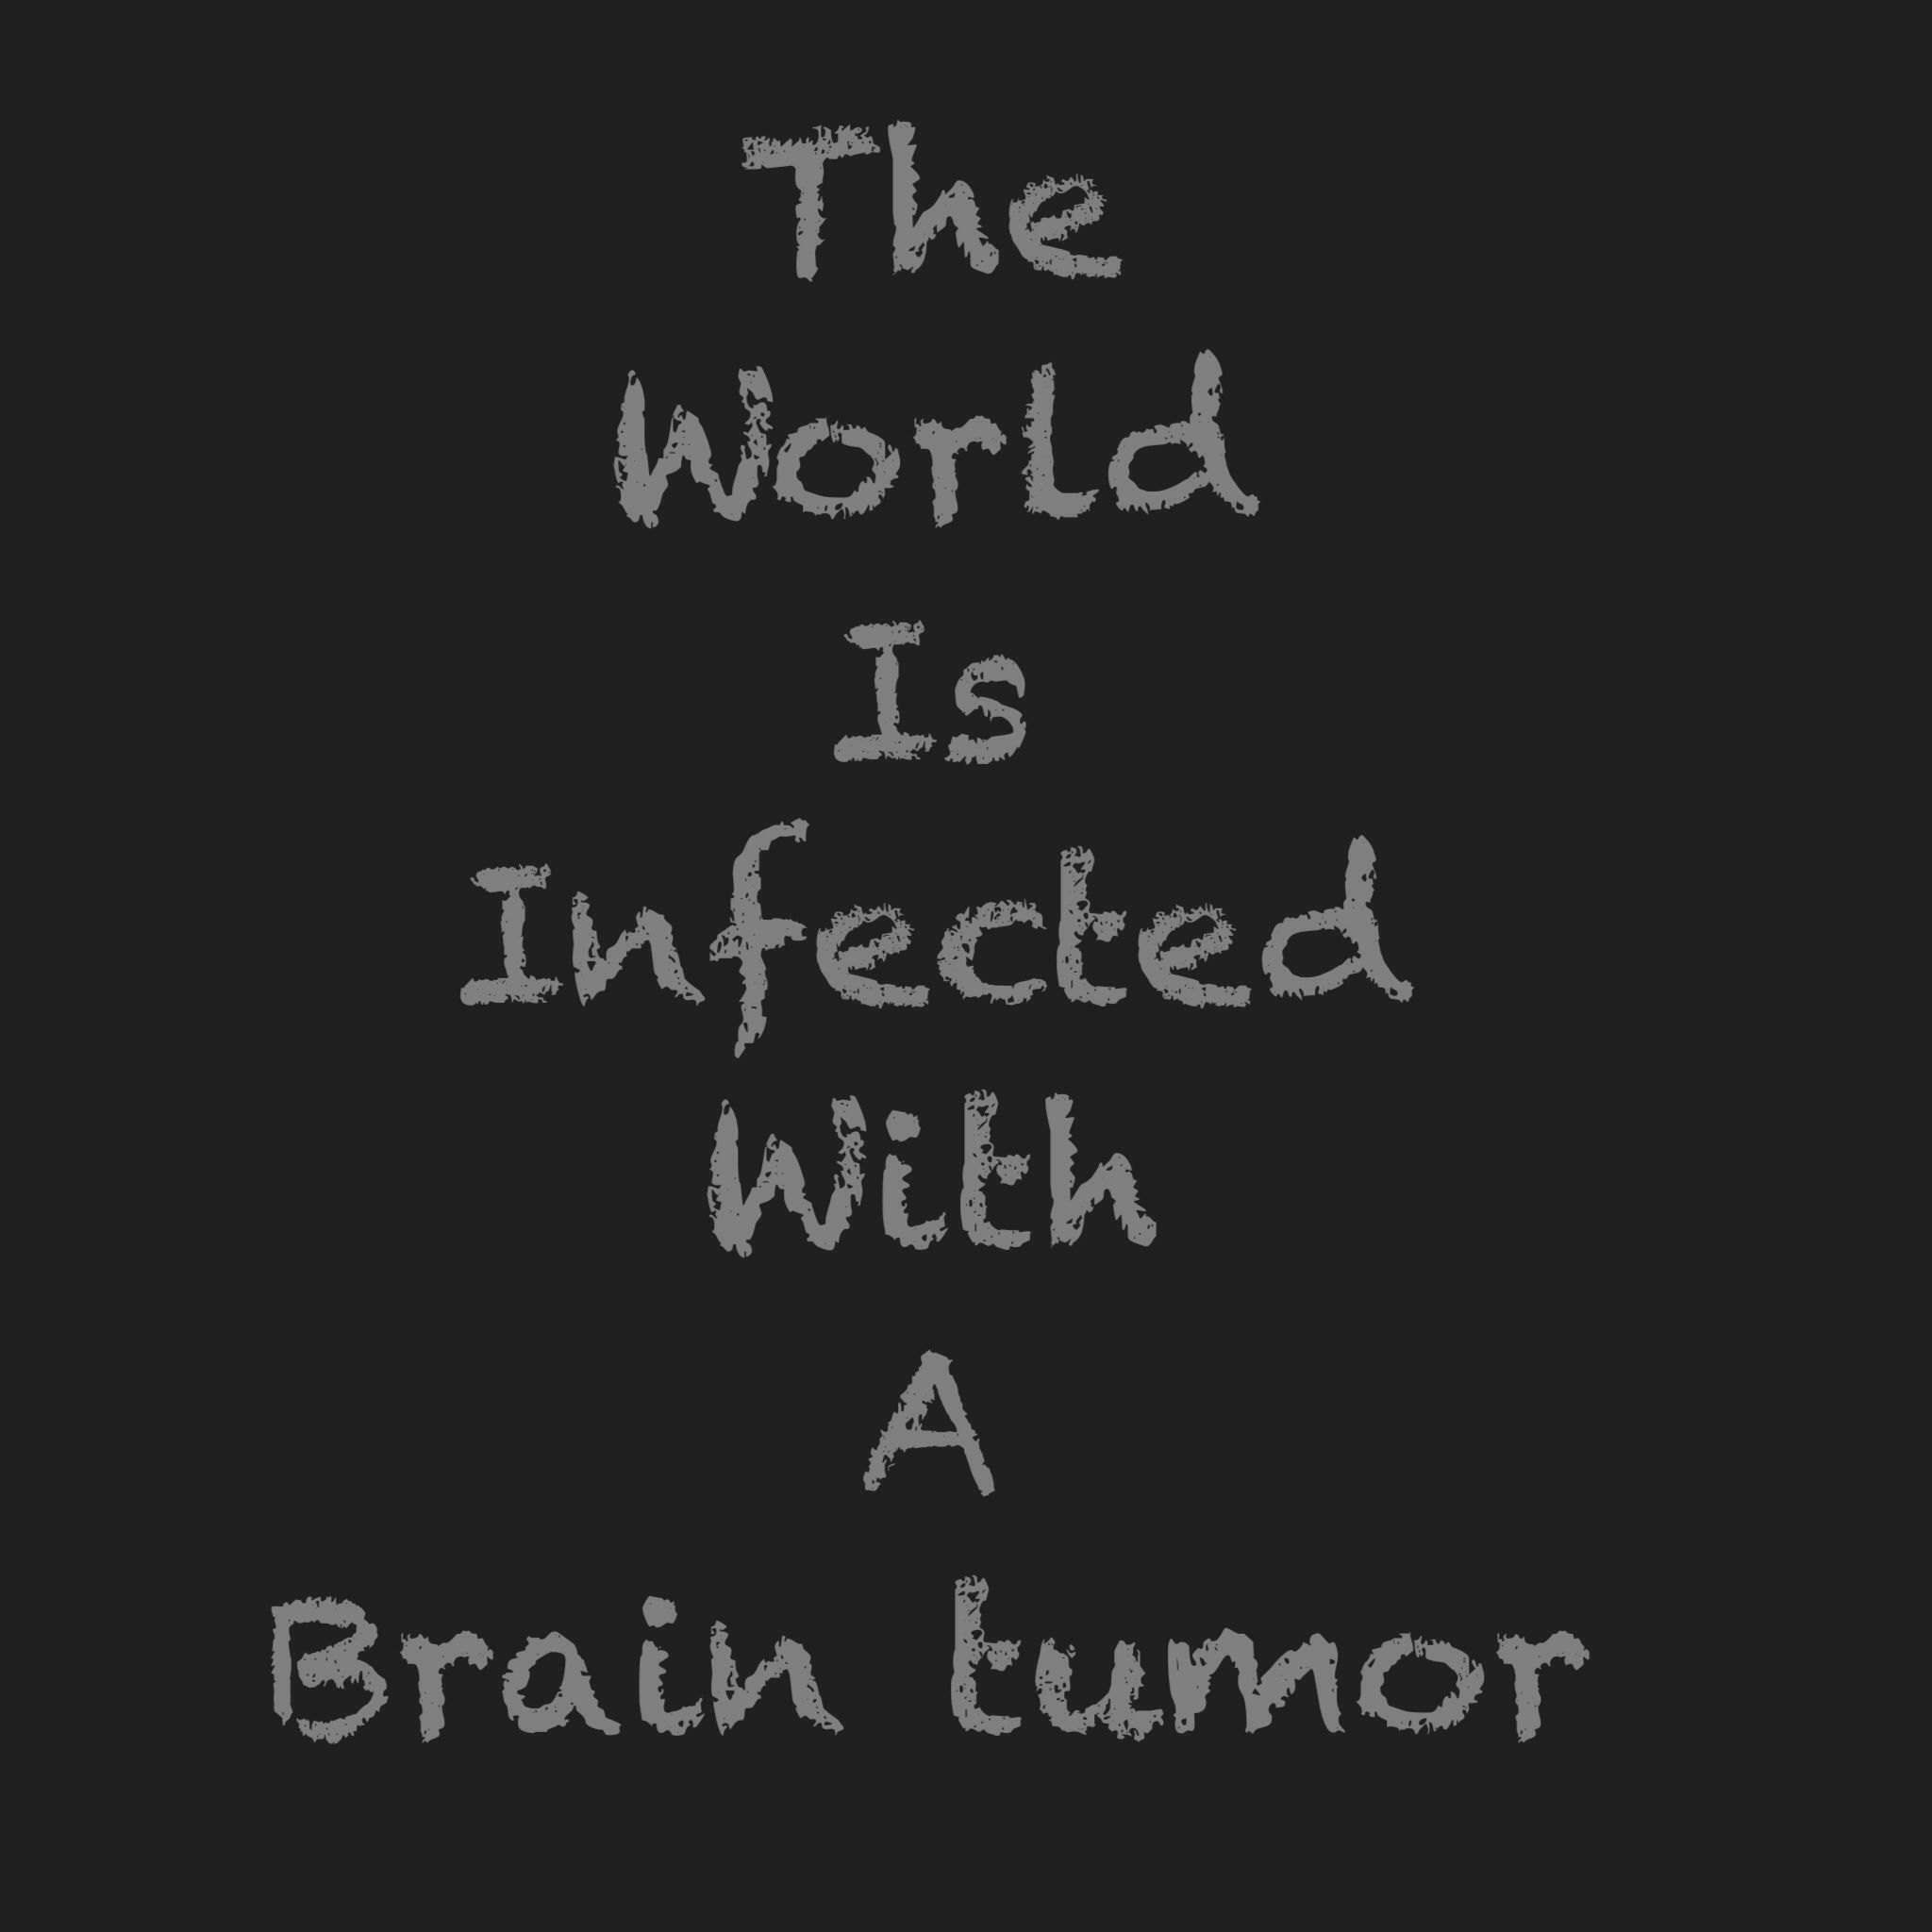 Sad Life Quotes And Sayings: The World Has A Brain Tumor Quote Life Sad